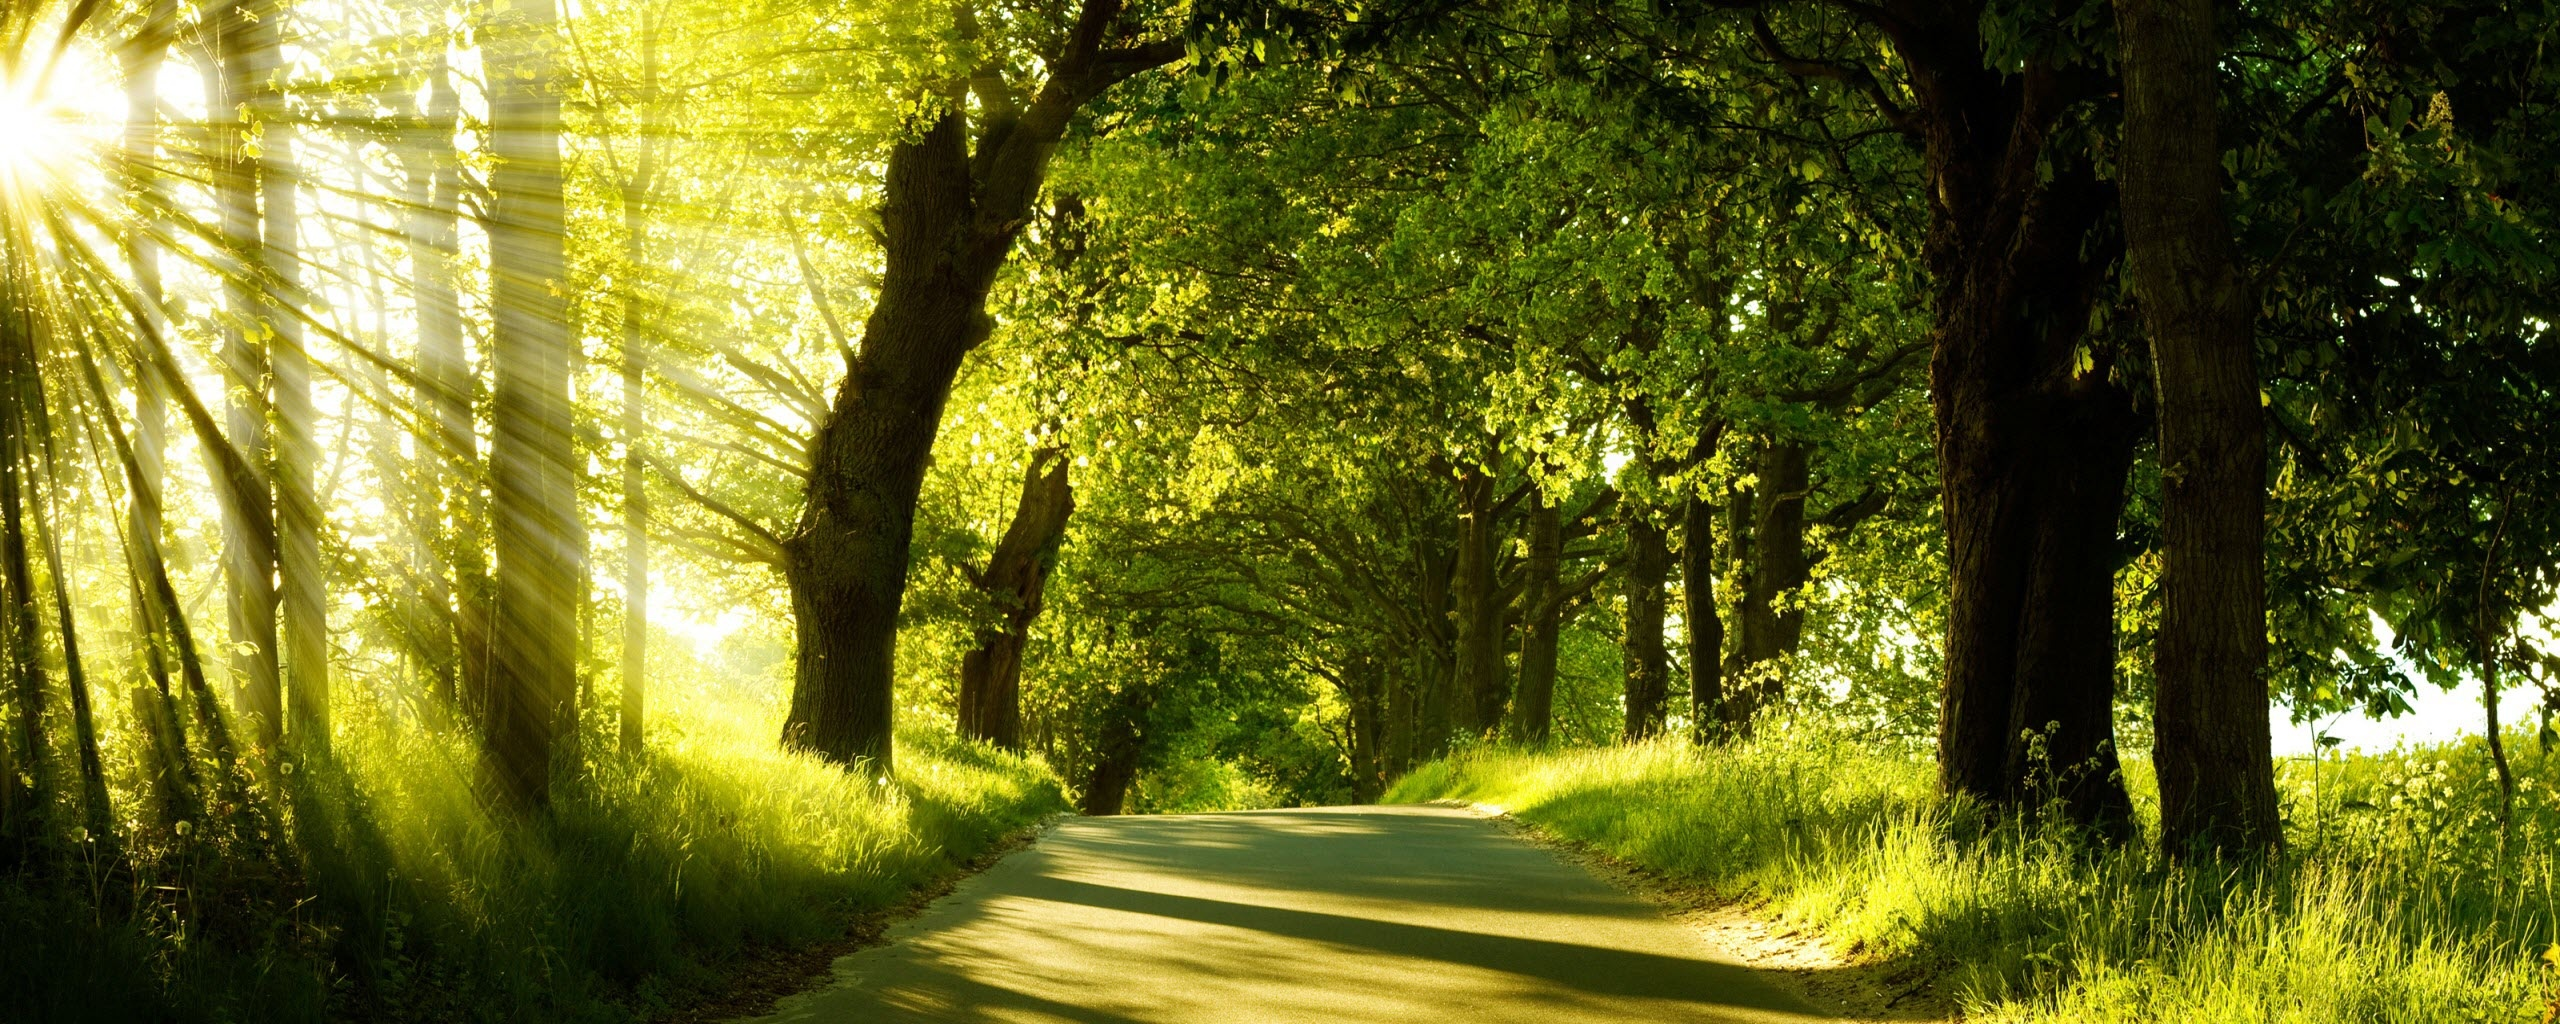 Green Nature Dual Monitor Wallpapers HD Wallpapers 2560x1024